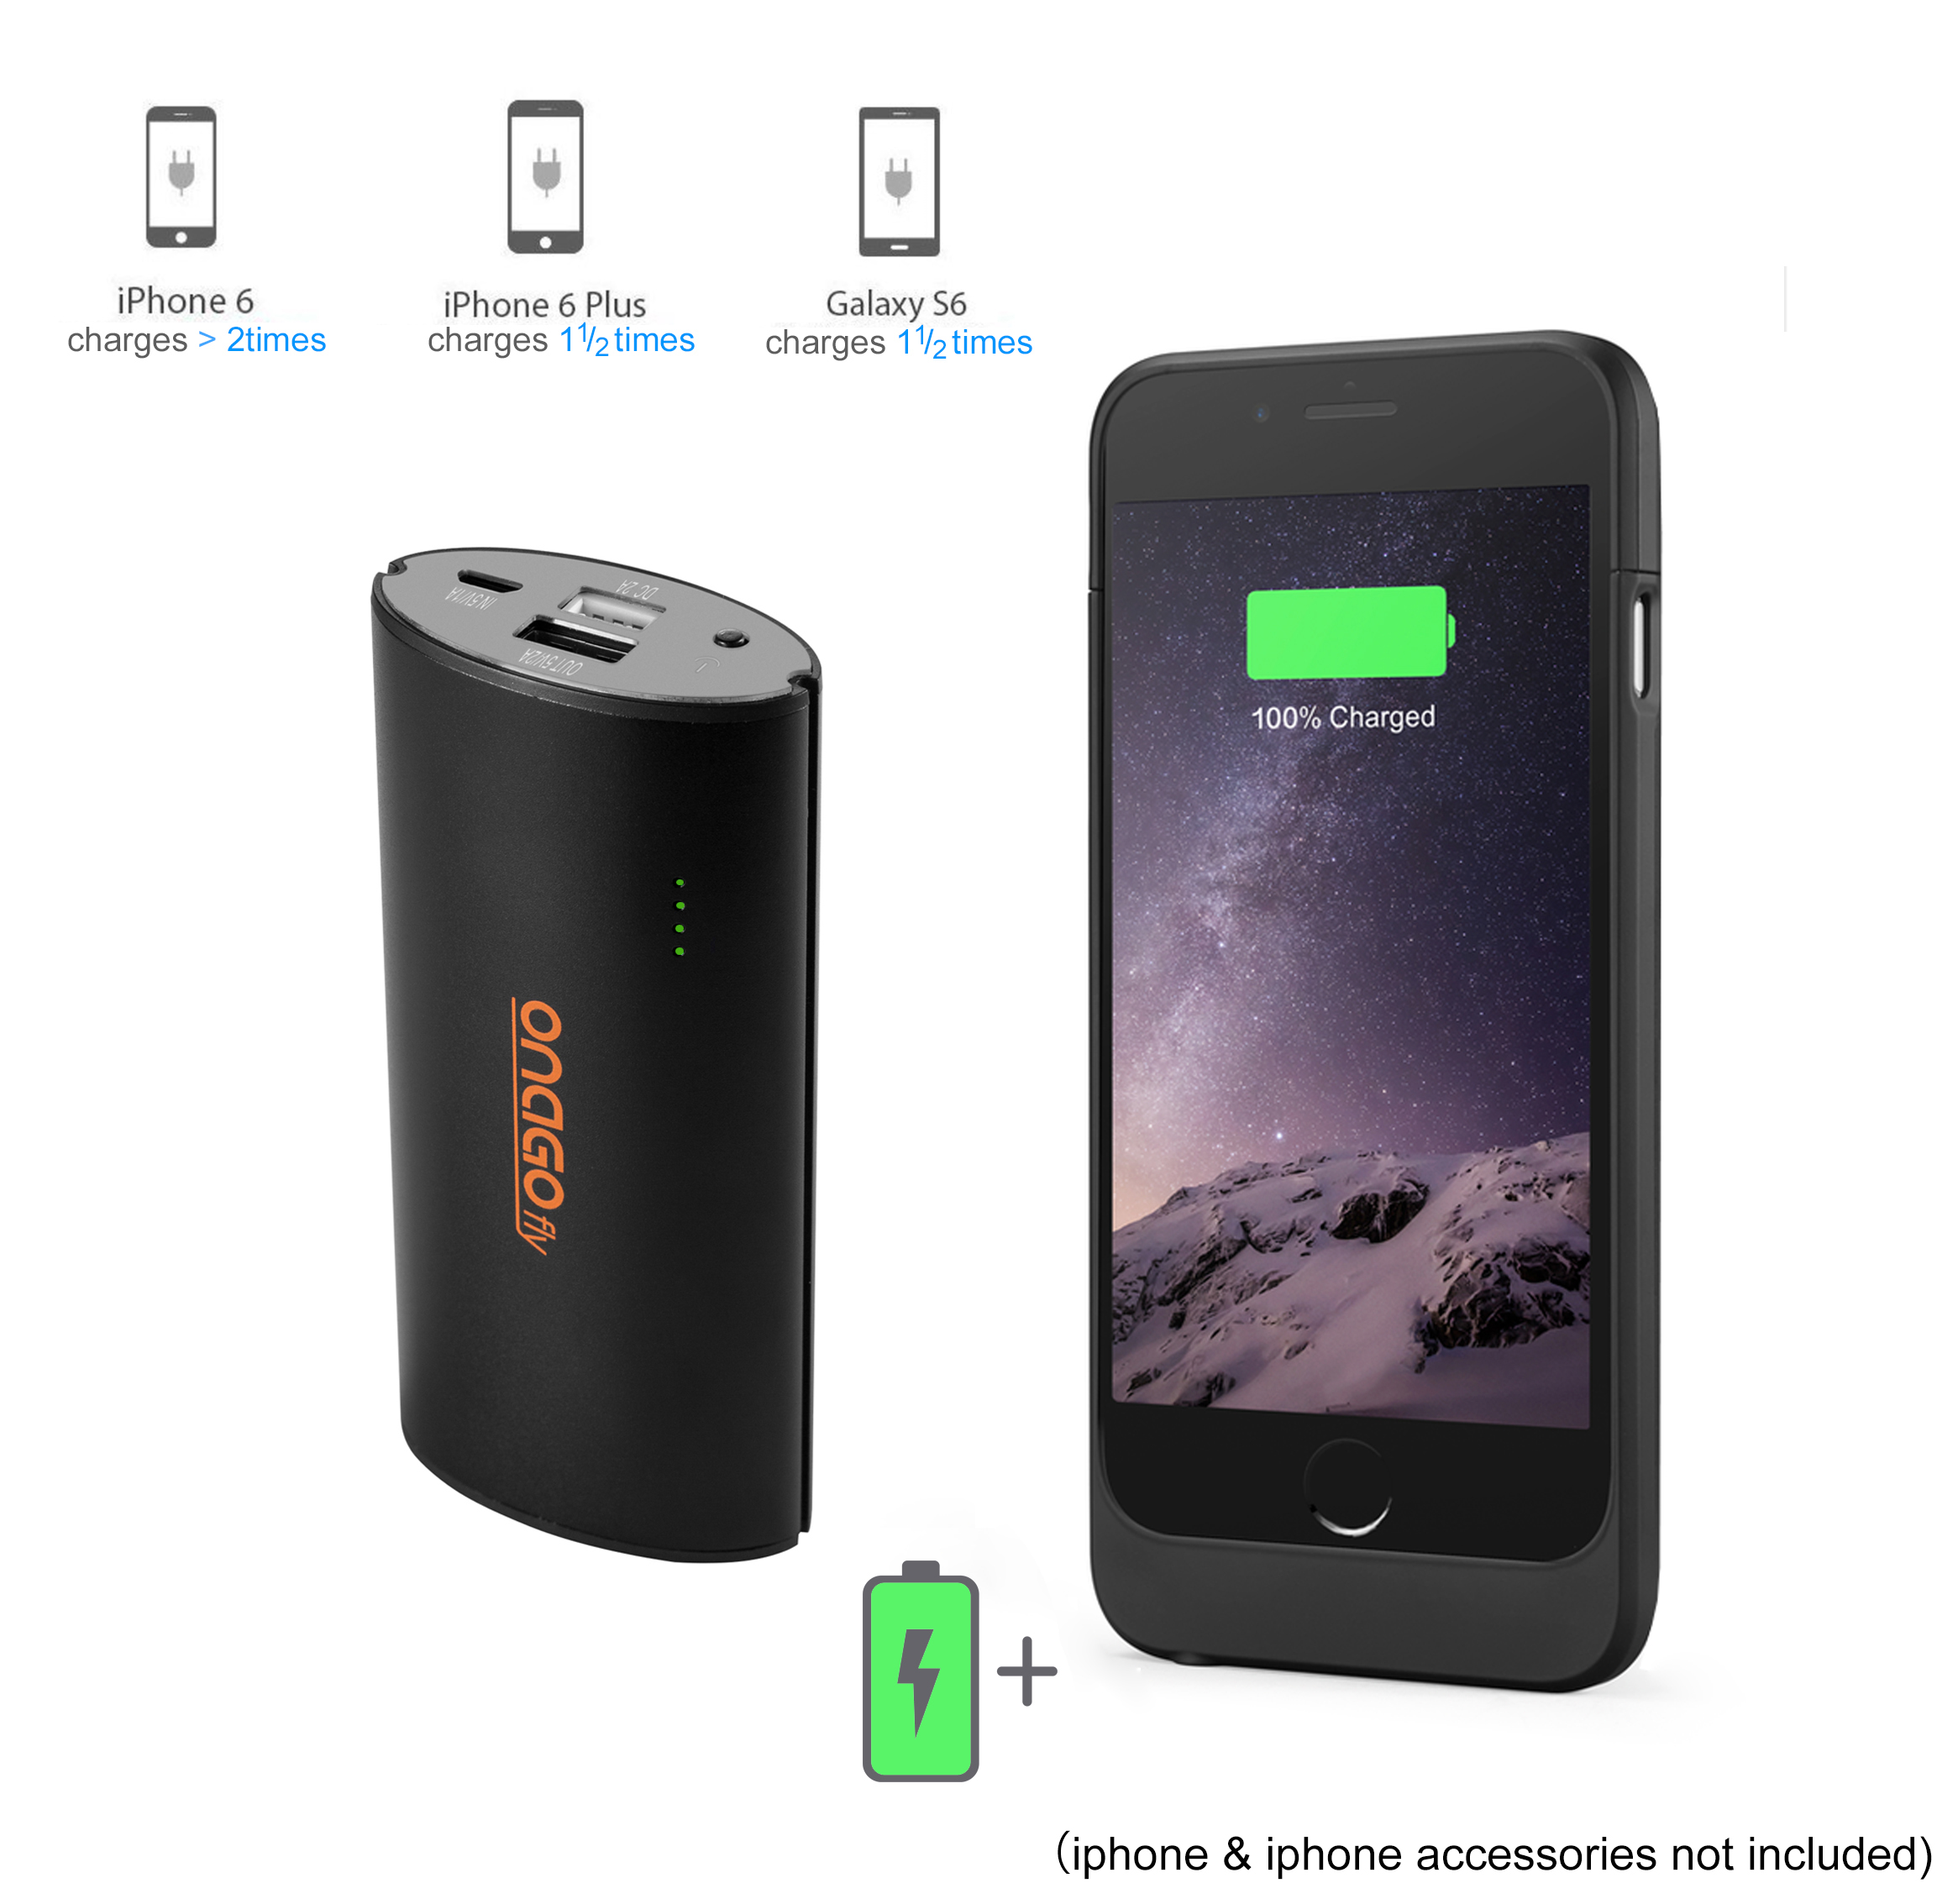 Onago 5000mAh Power Bank, Portable Battery Charger in Black